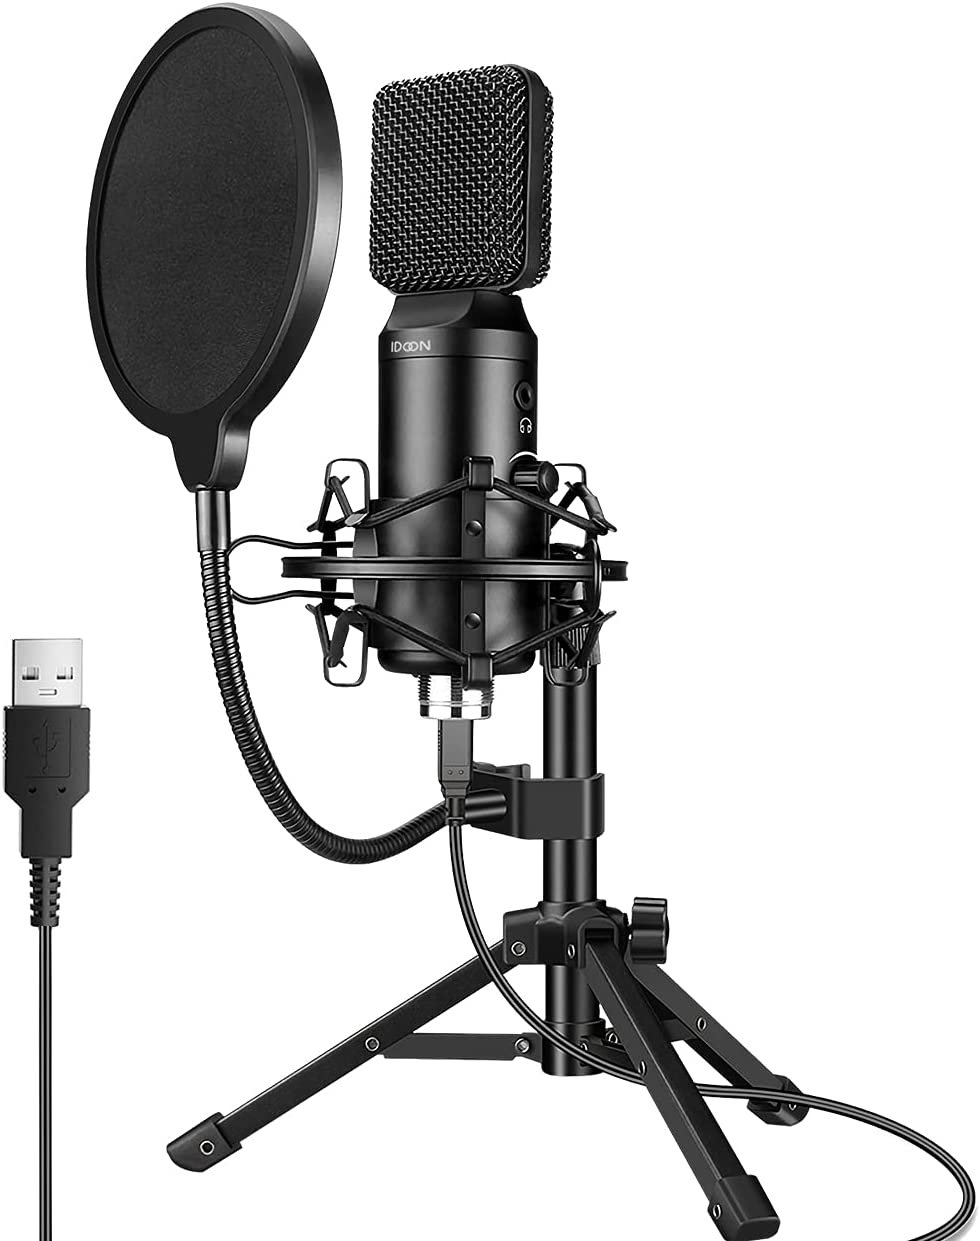 USB Condenser Microphones for PC [Headphone Monitor Output], Recording Micophone and Shock Mount for Livestream, Gaming, YouTube, Podcast, Compatible with Computer/MAC/Laptop, by IDoon